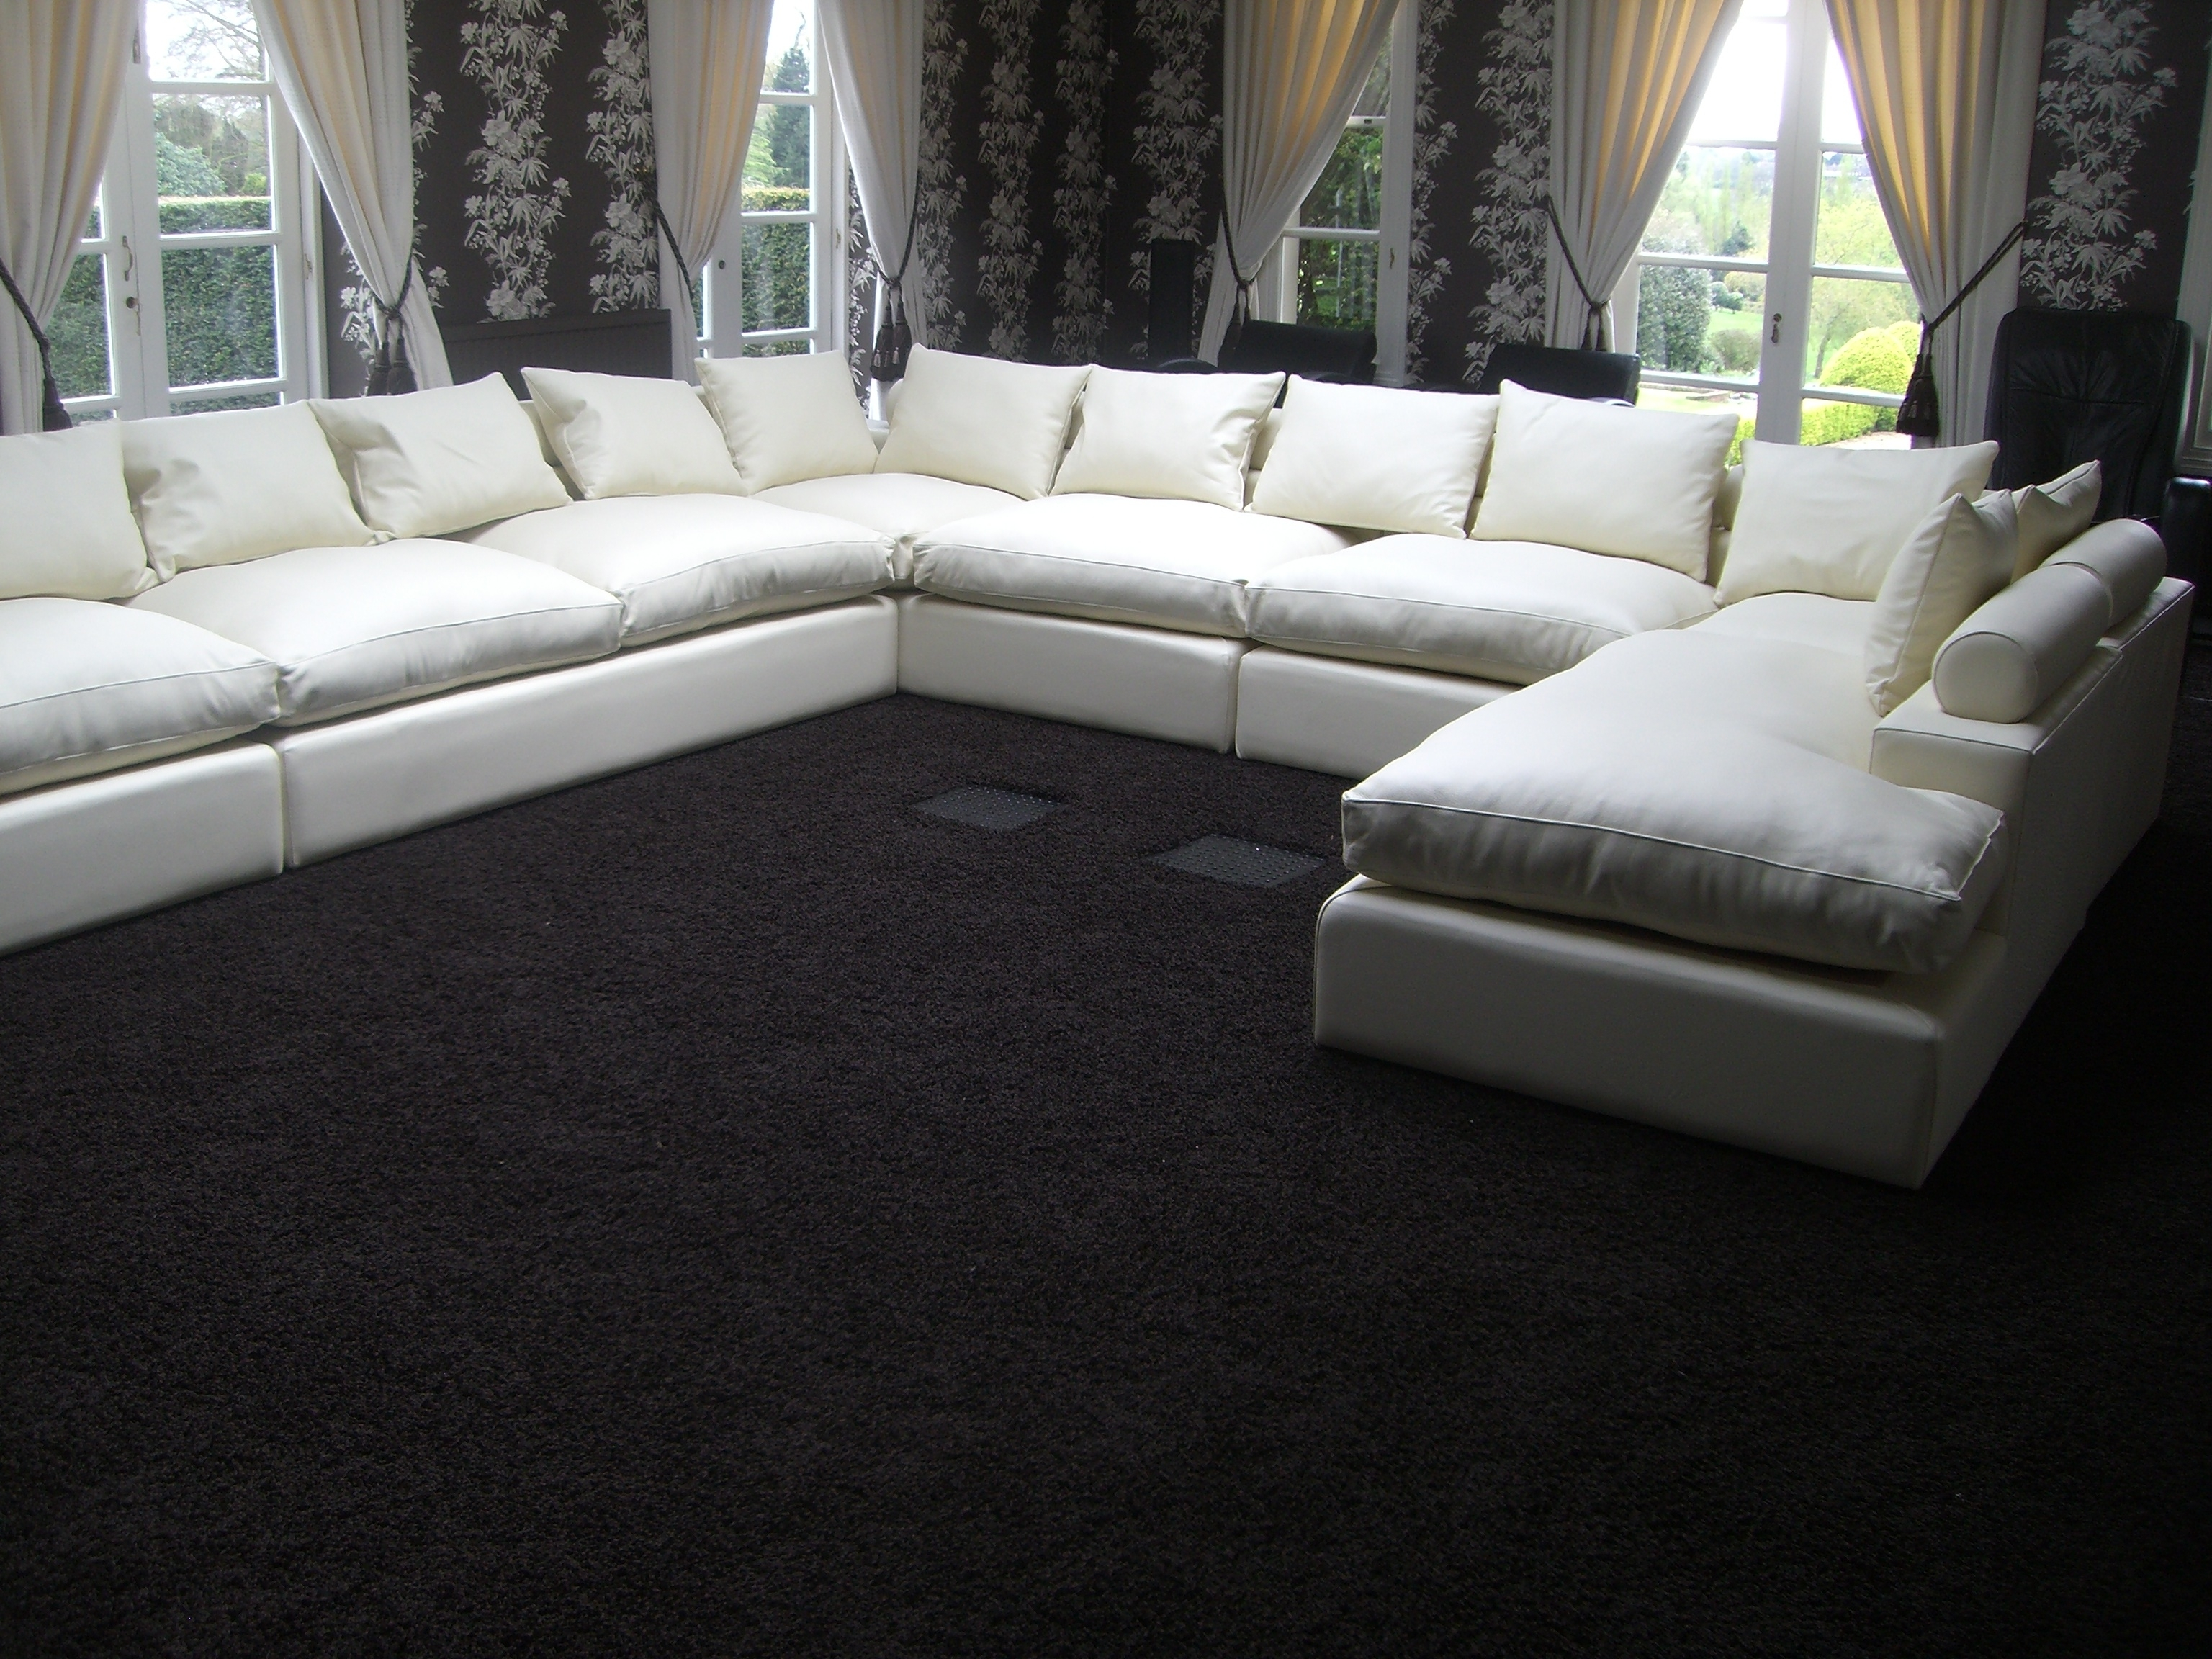 Large U Shaped Sofa – Fjellkjeden Regarding Huge U Shaped Sectionals (View 6 of 10)